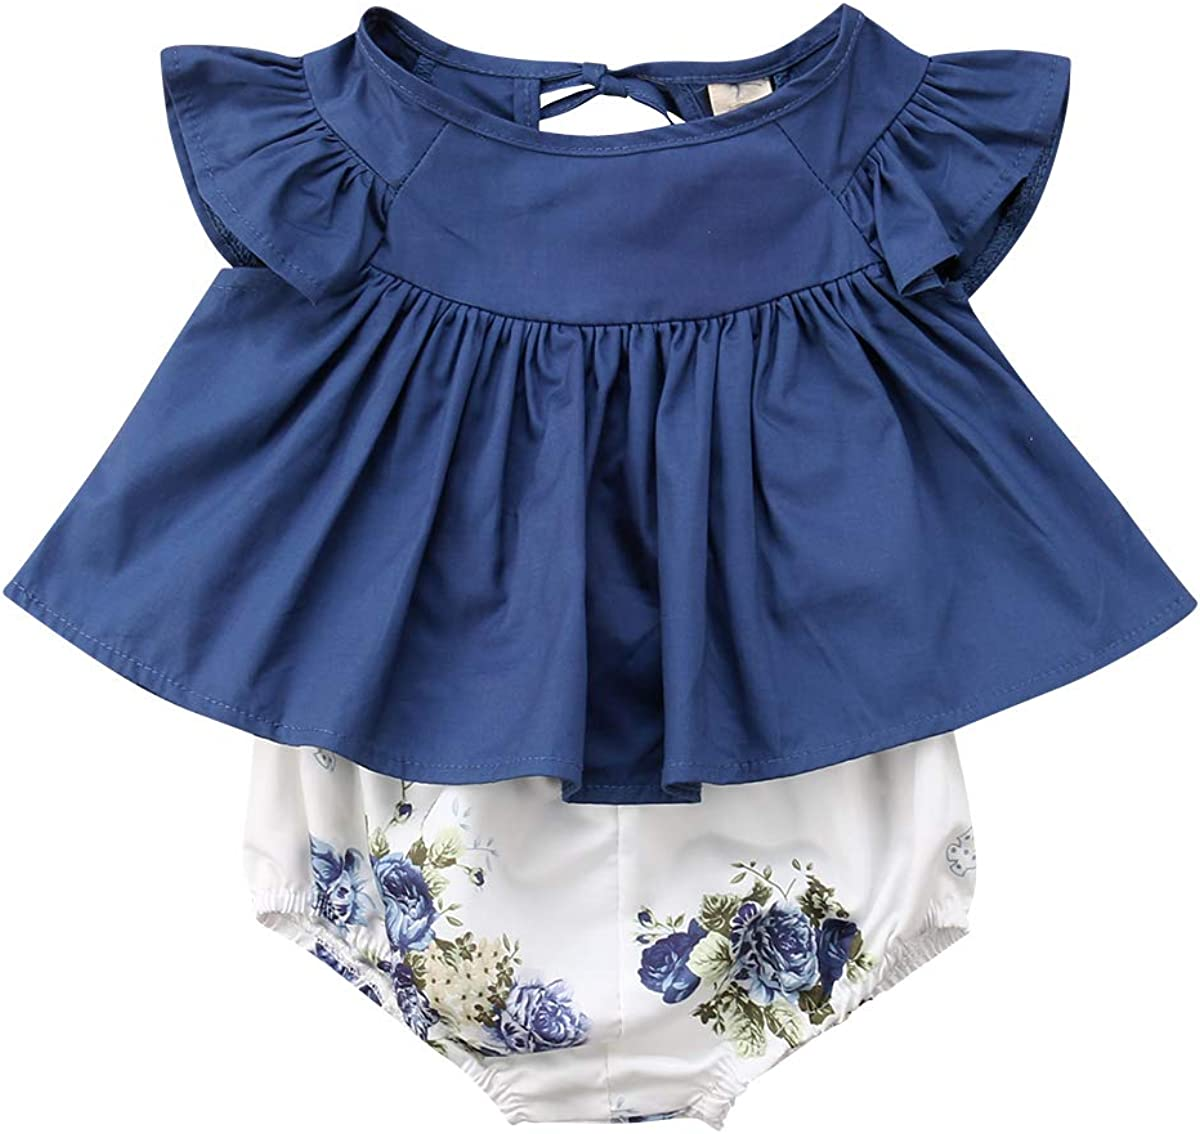 Newborn Baby Girls Challenge the lowest price of Japan ☆ Clothes Ruffles Flutter OFFicial shop Sleeve Denim To Dress